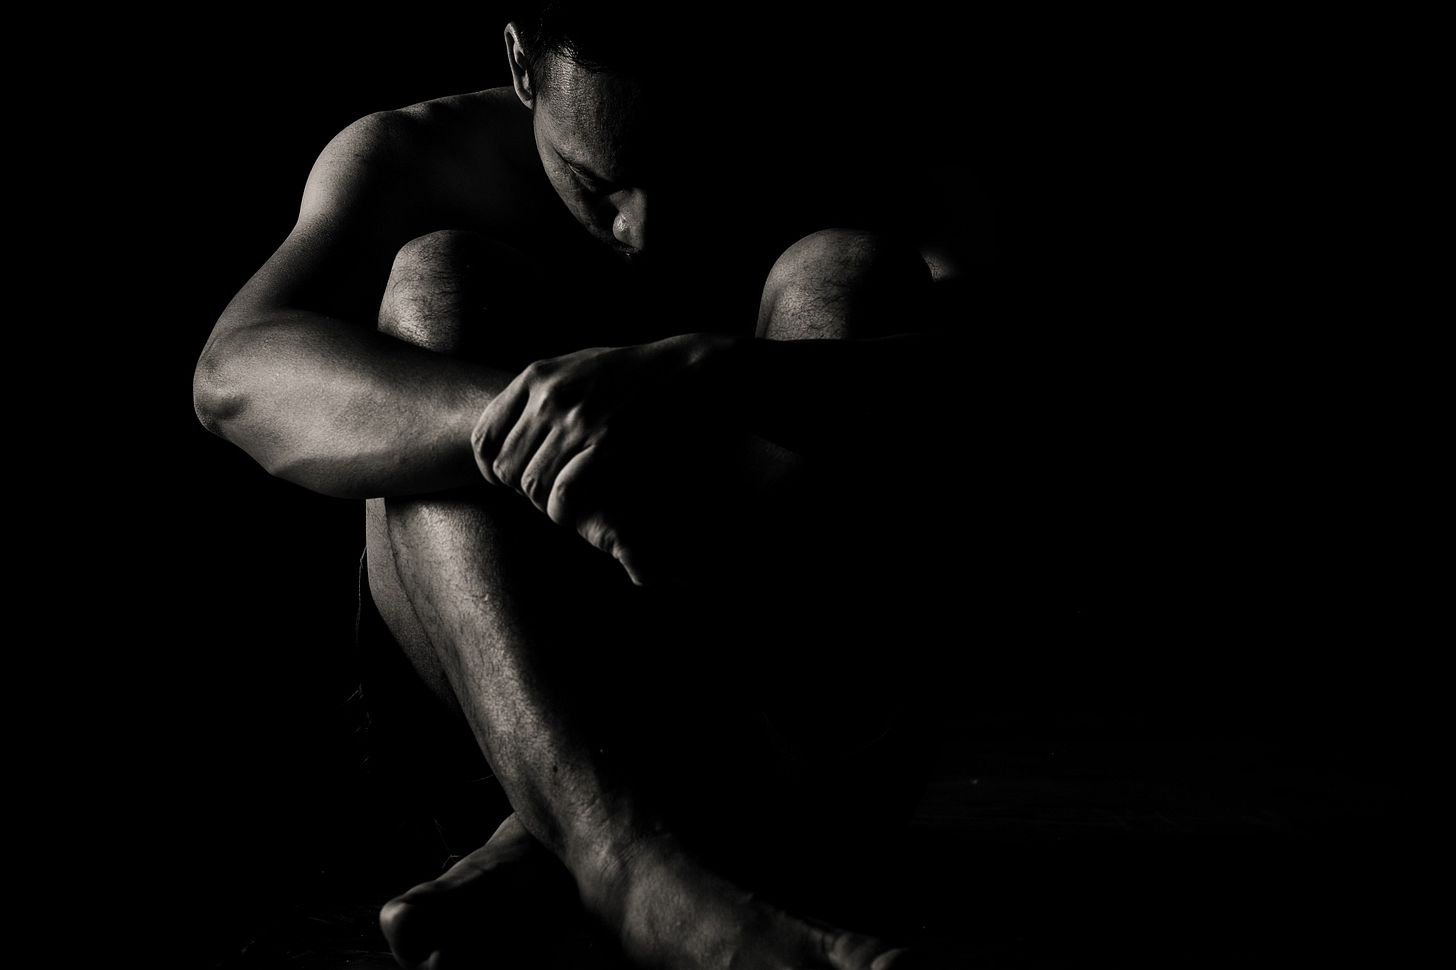 black and white photo of a depressed man crouched in the dark for article by Larry G. Maguire